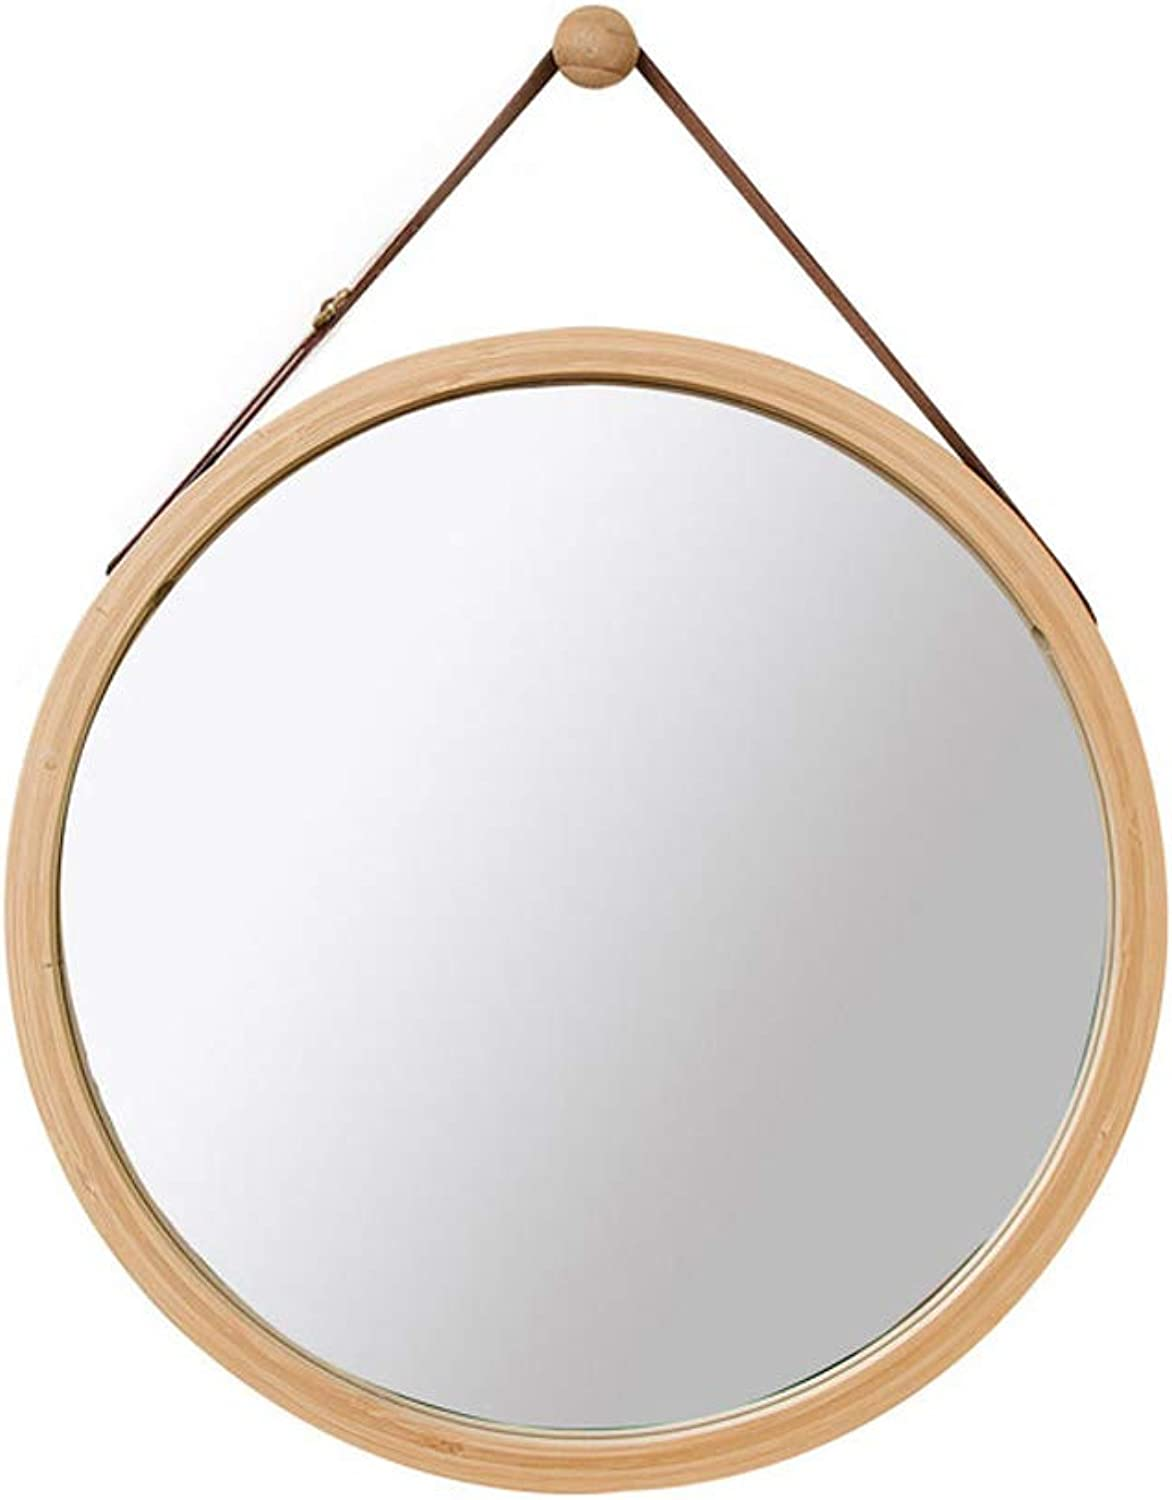 Lyqqqq Nordic Bamboo color Bathroom Mirror Wall Hanging Large Round Mirror Decorative Hanging Mirror Diameter 45cm